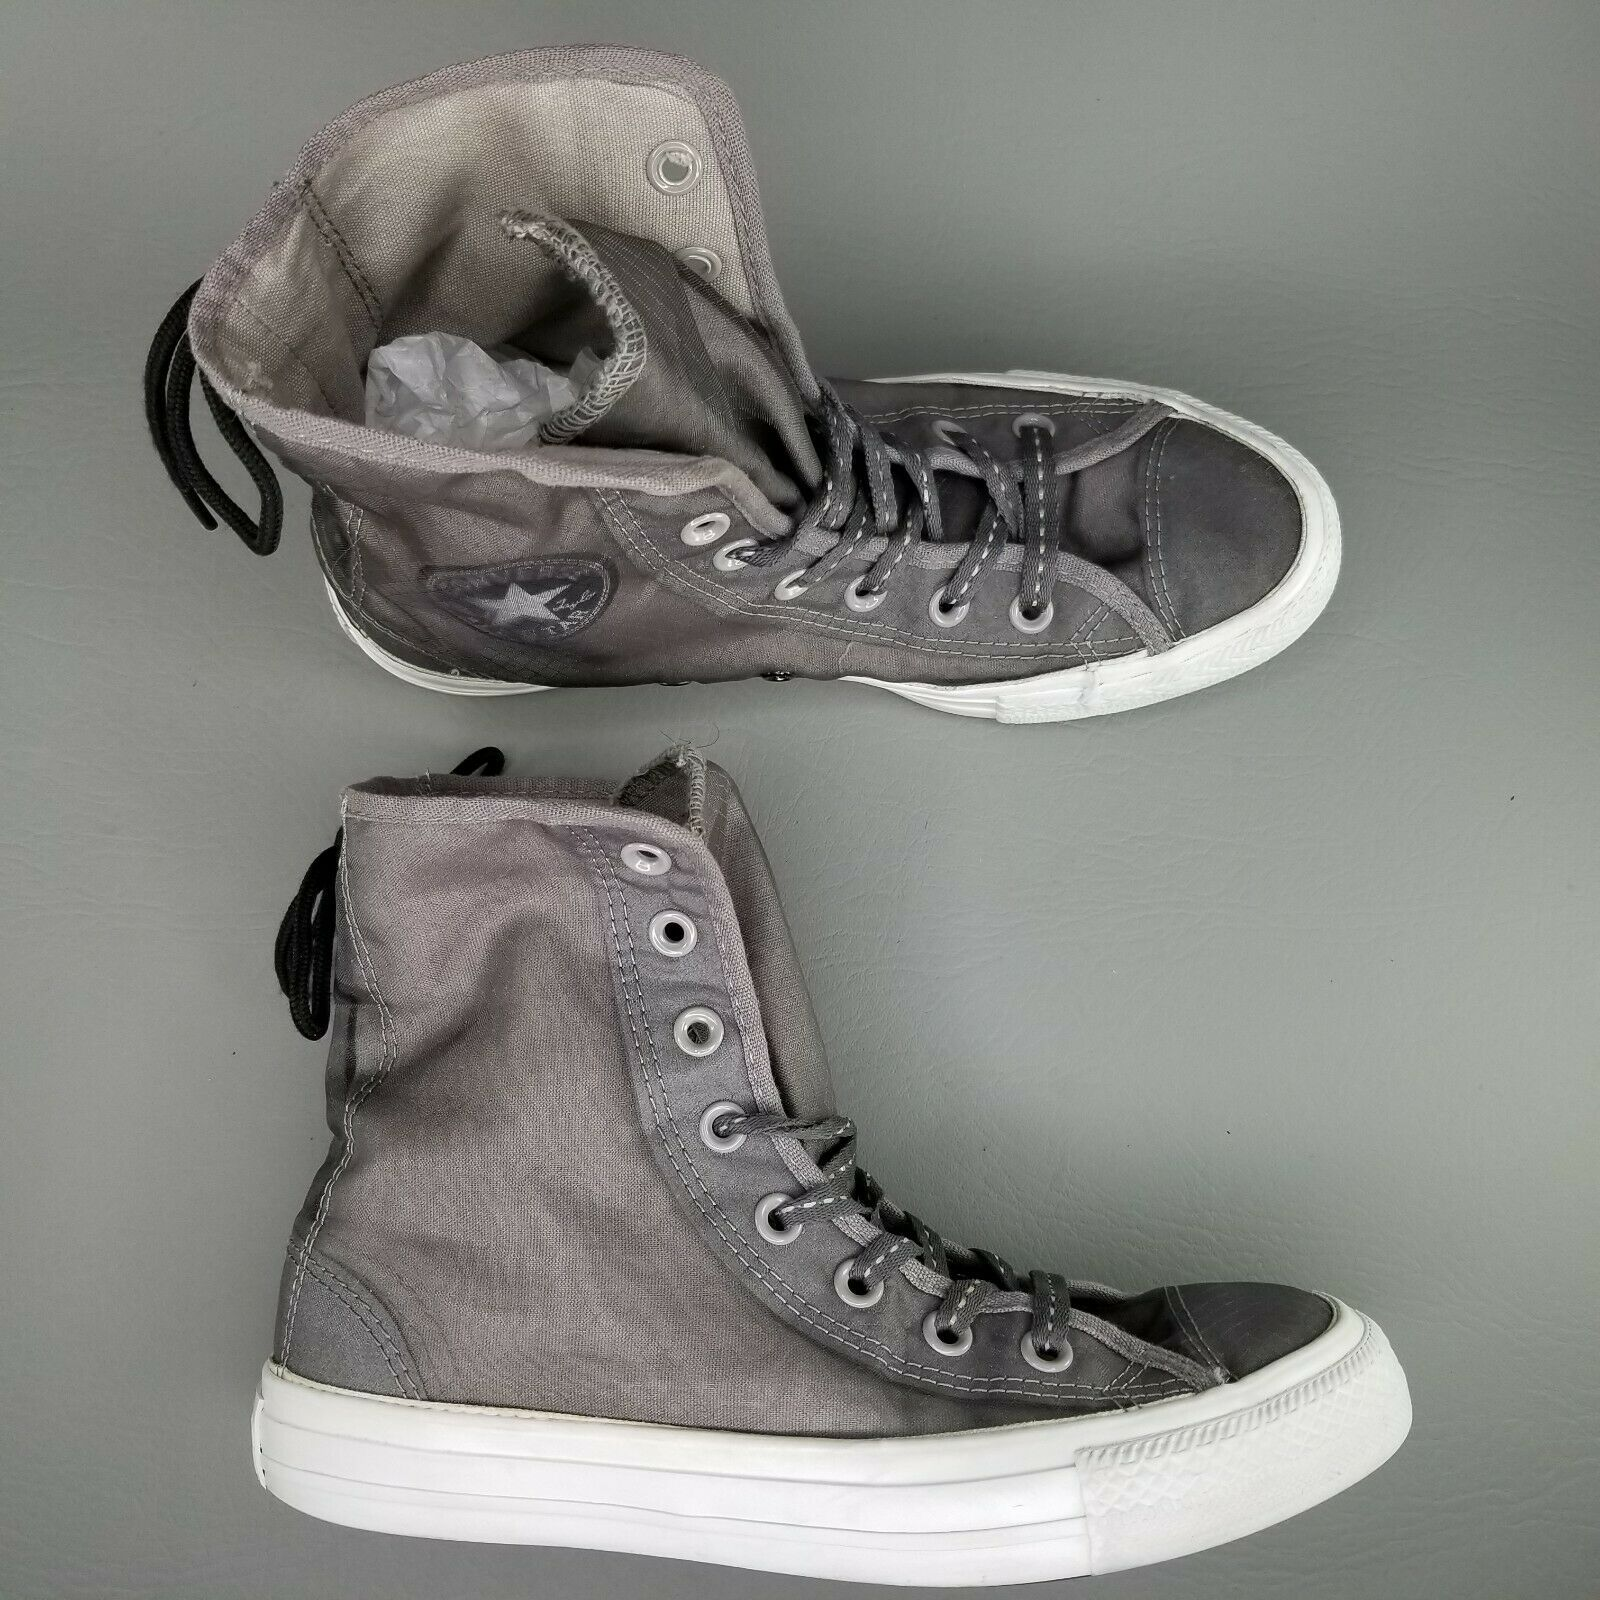 Converse CTAS Back Lace Hi Top Shoes Womens SZ 8 See Through Chucks Gray White image 2